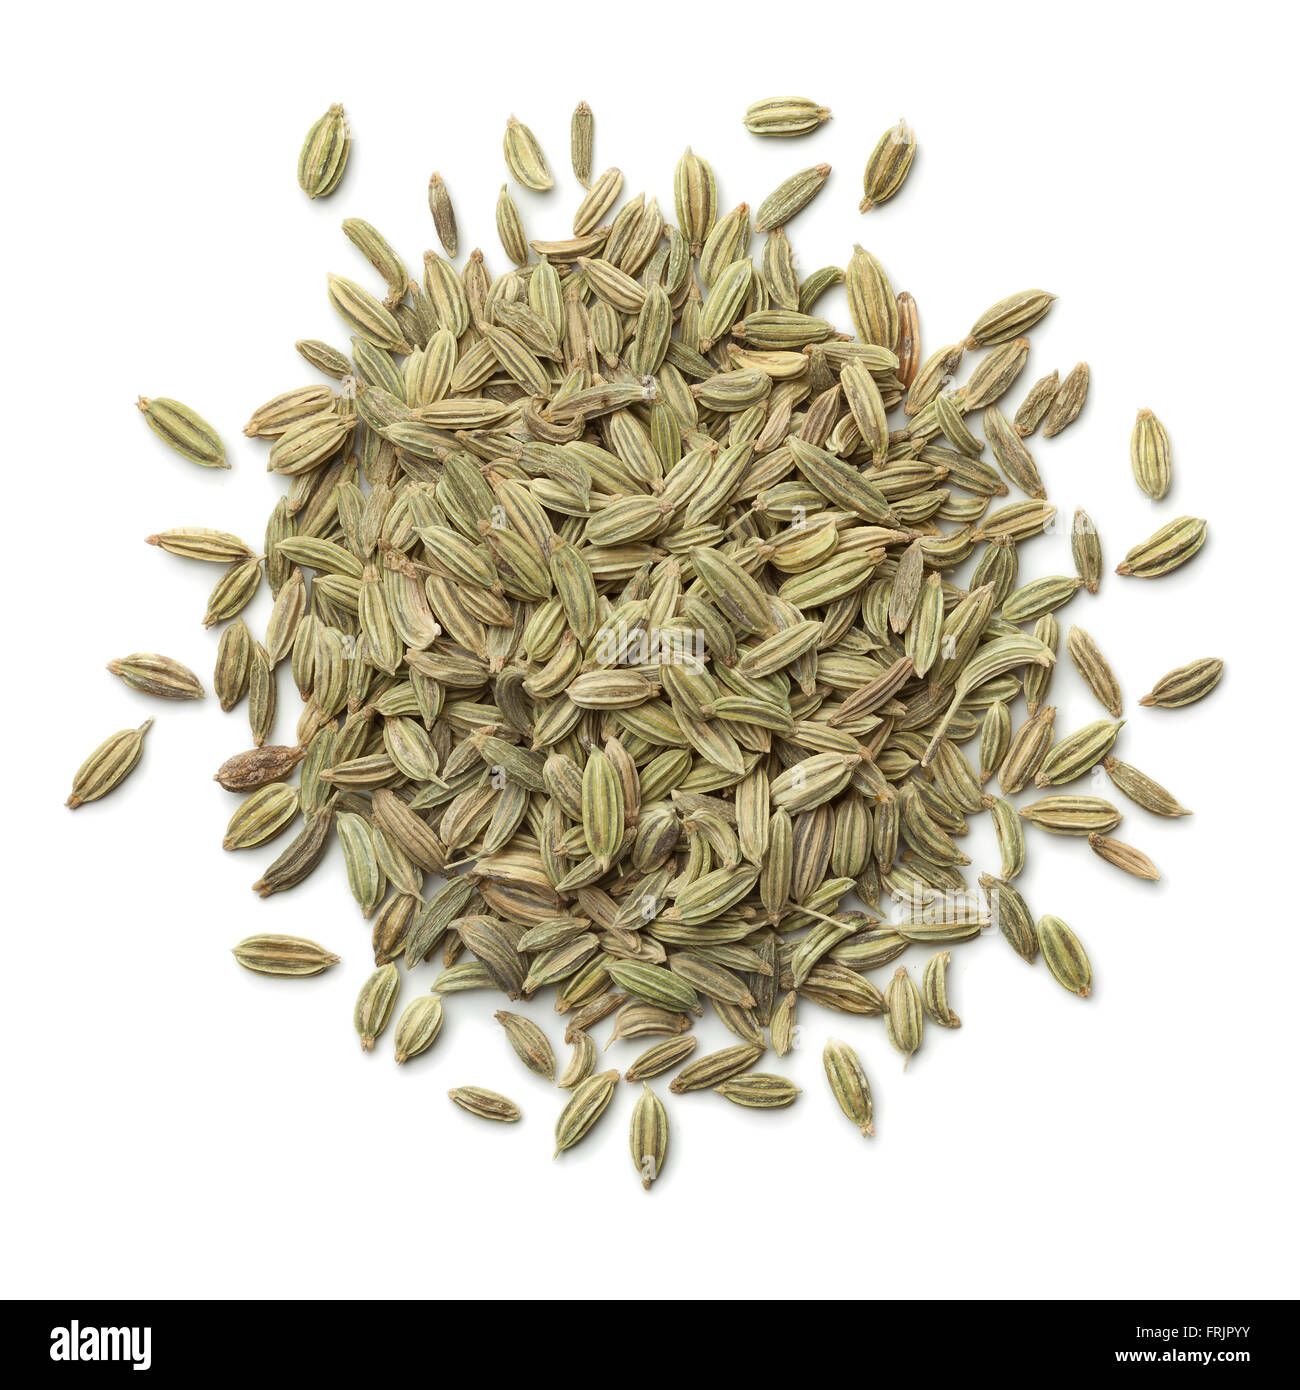 Heap of green fennel seeds on white background - Stock Image